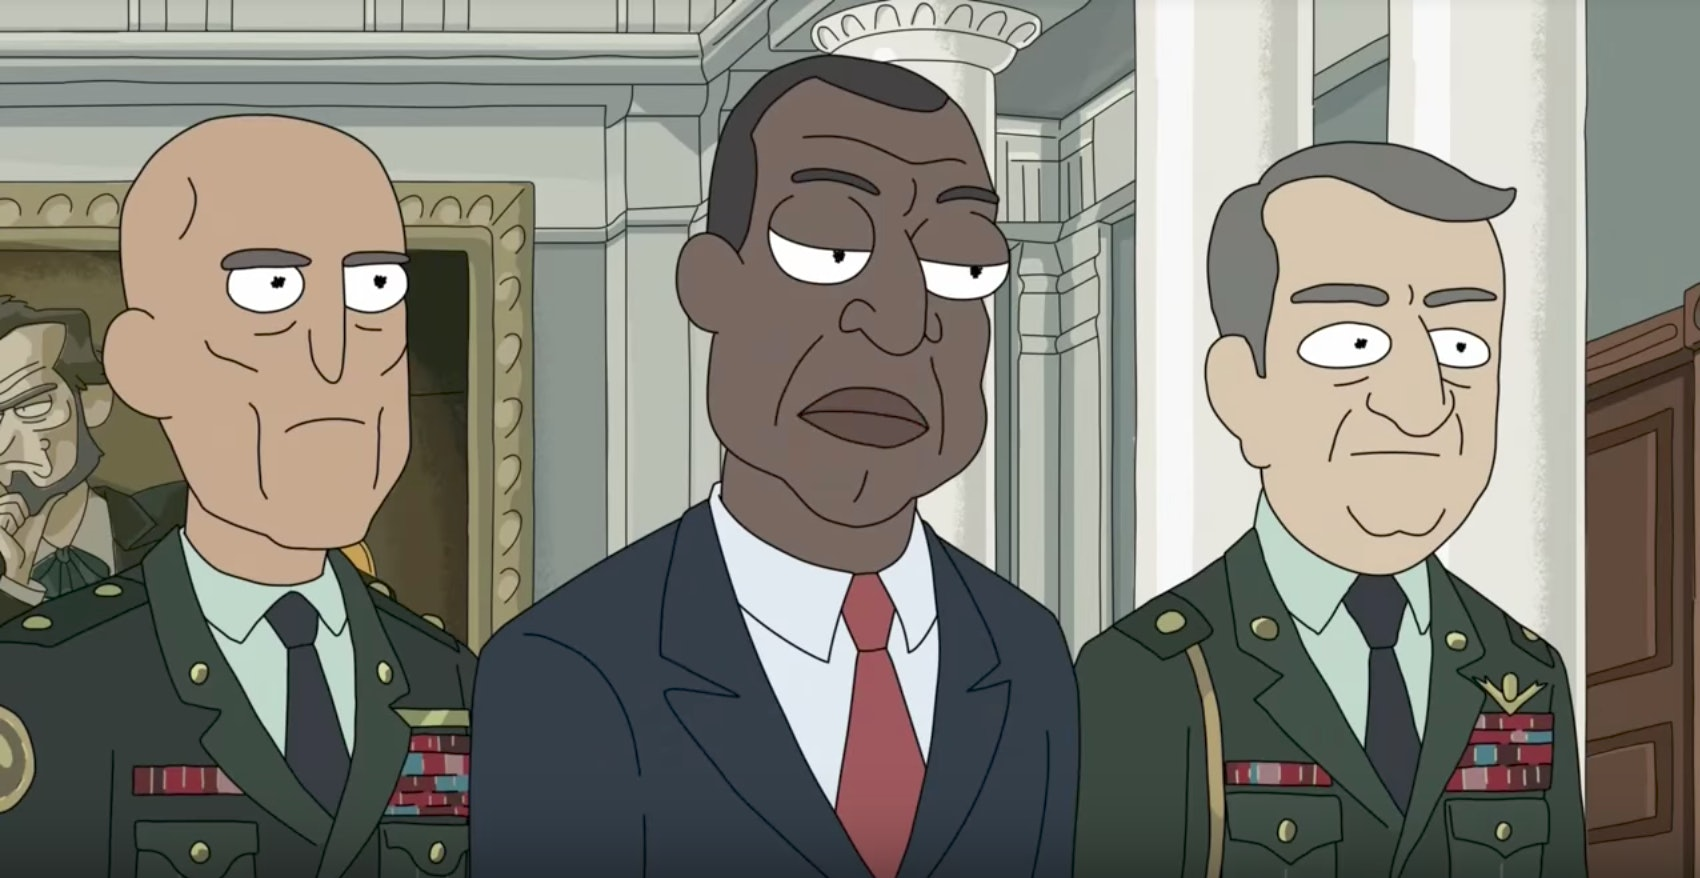 The President on 'Rick and Morty'.